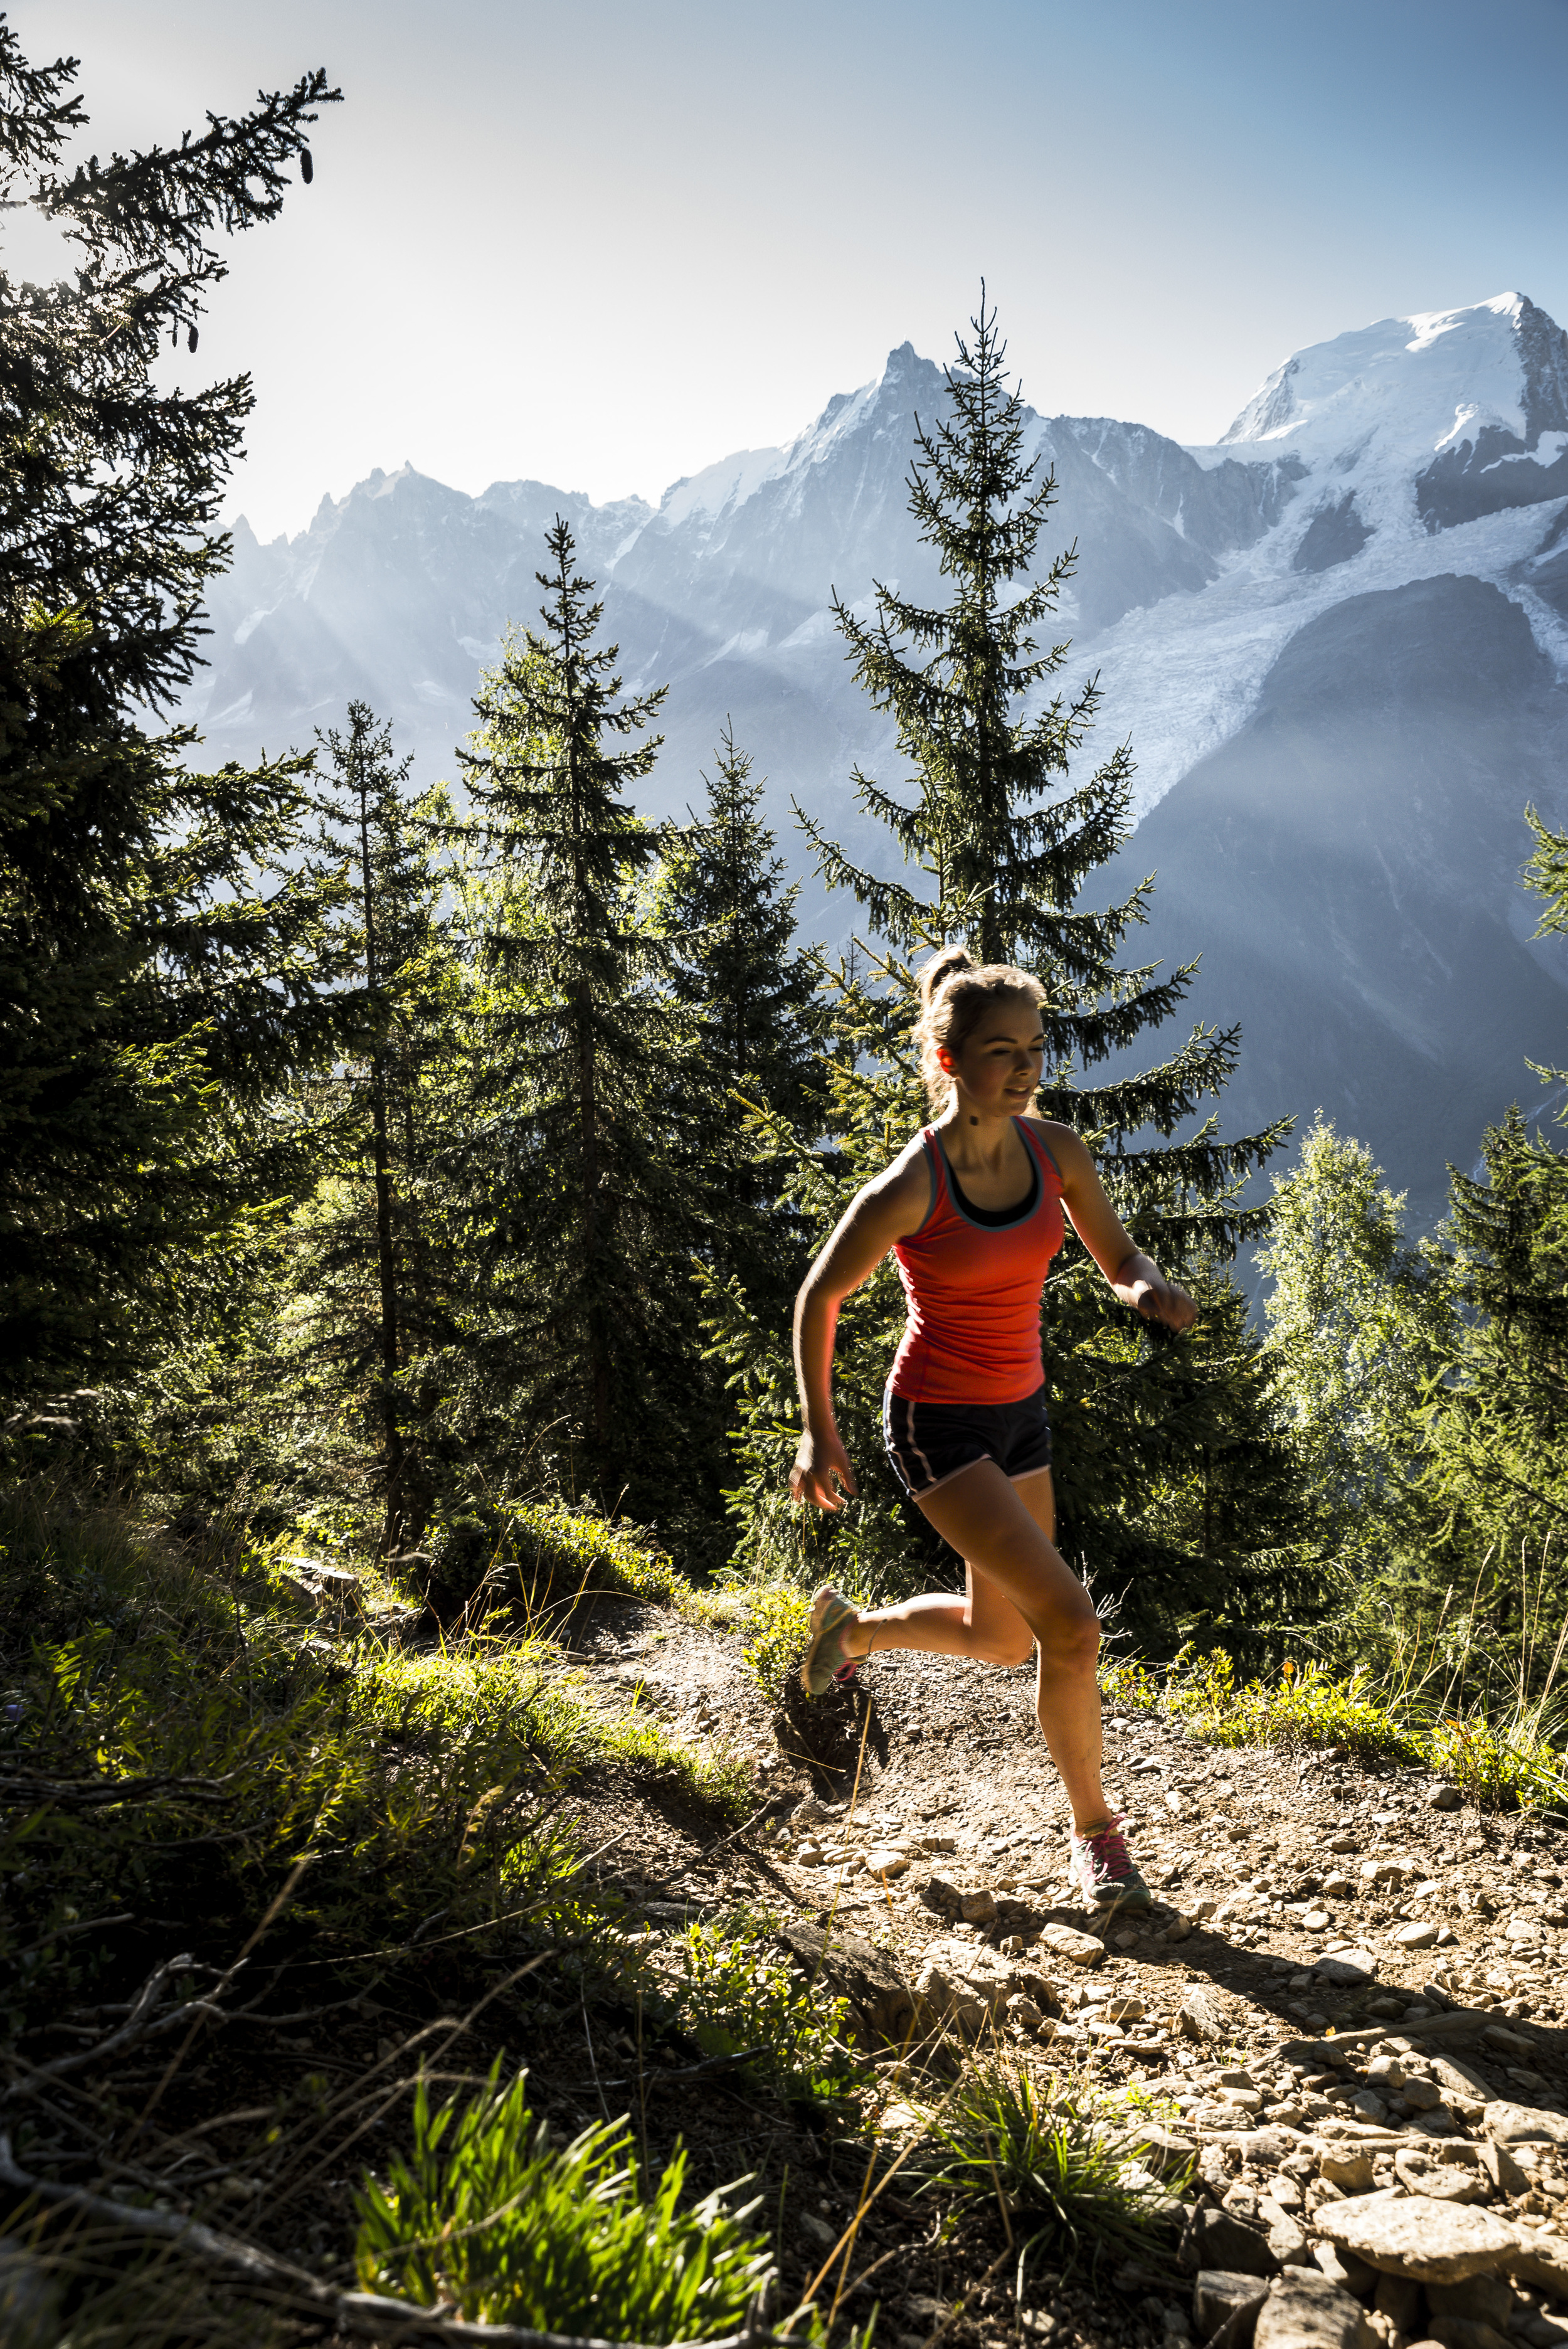 Trail running in the Chamonix valley, France